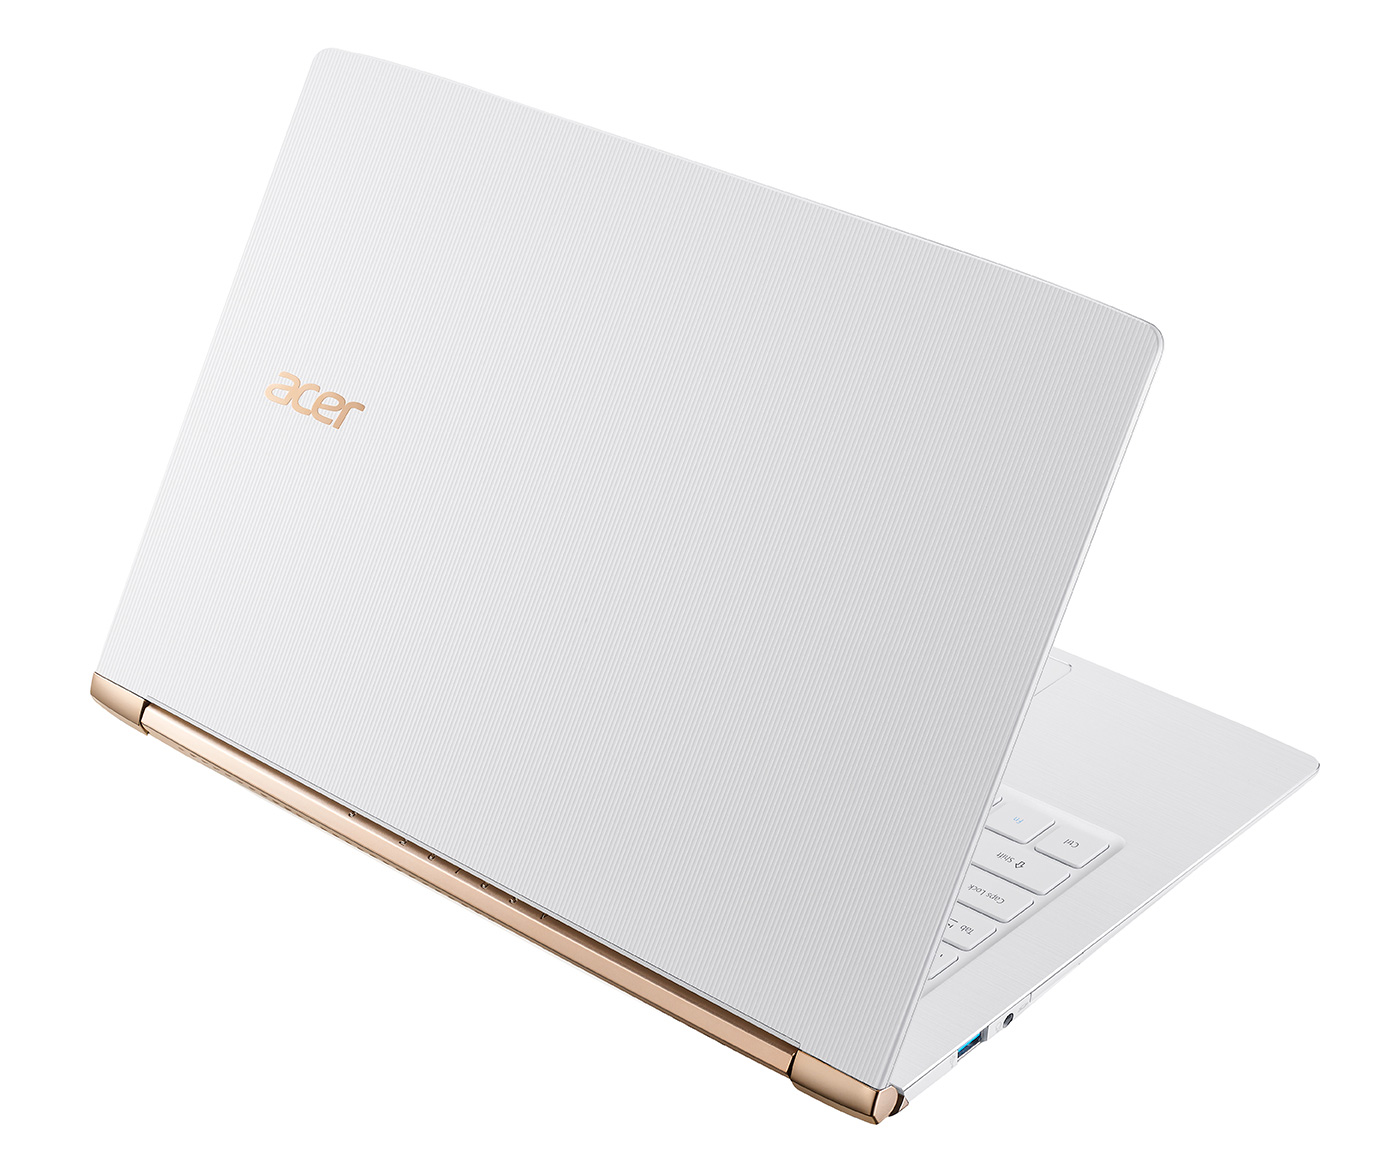 acer-aspire-s5-371-blanc-4